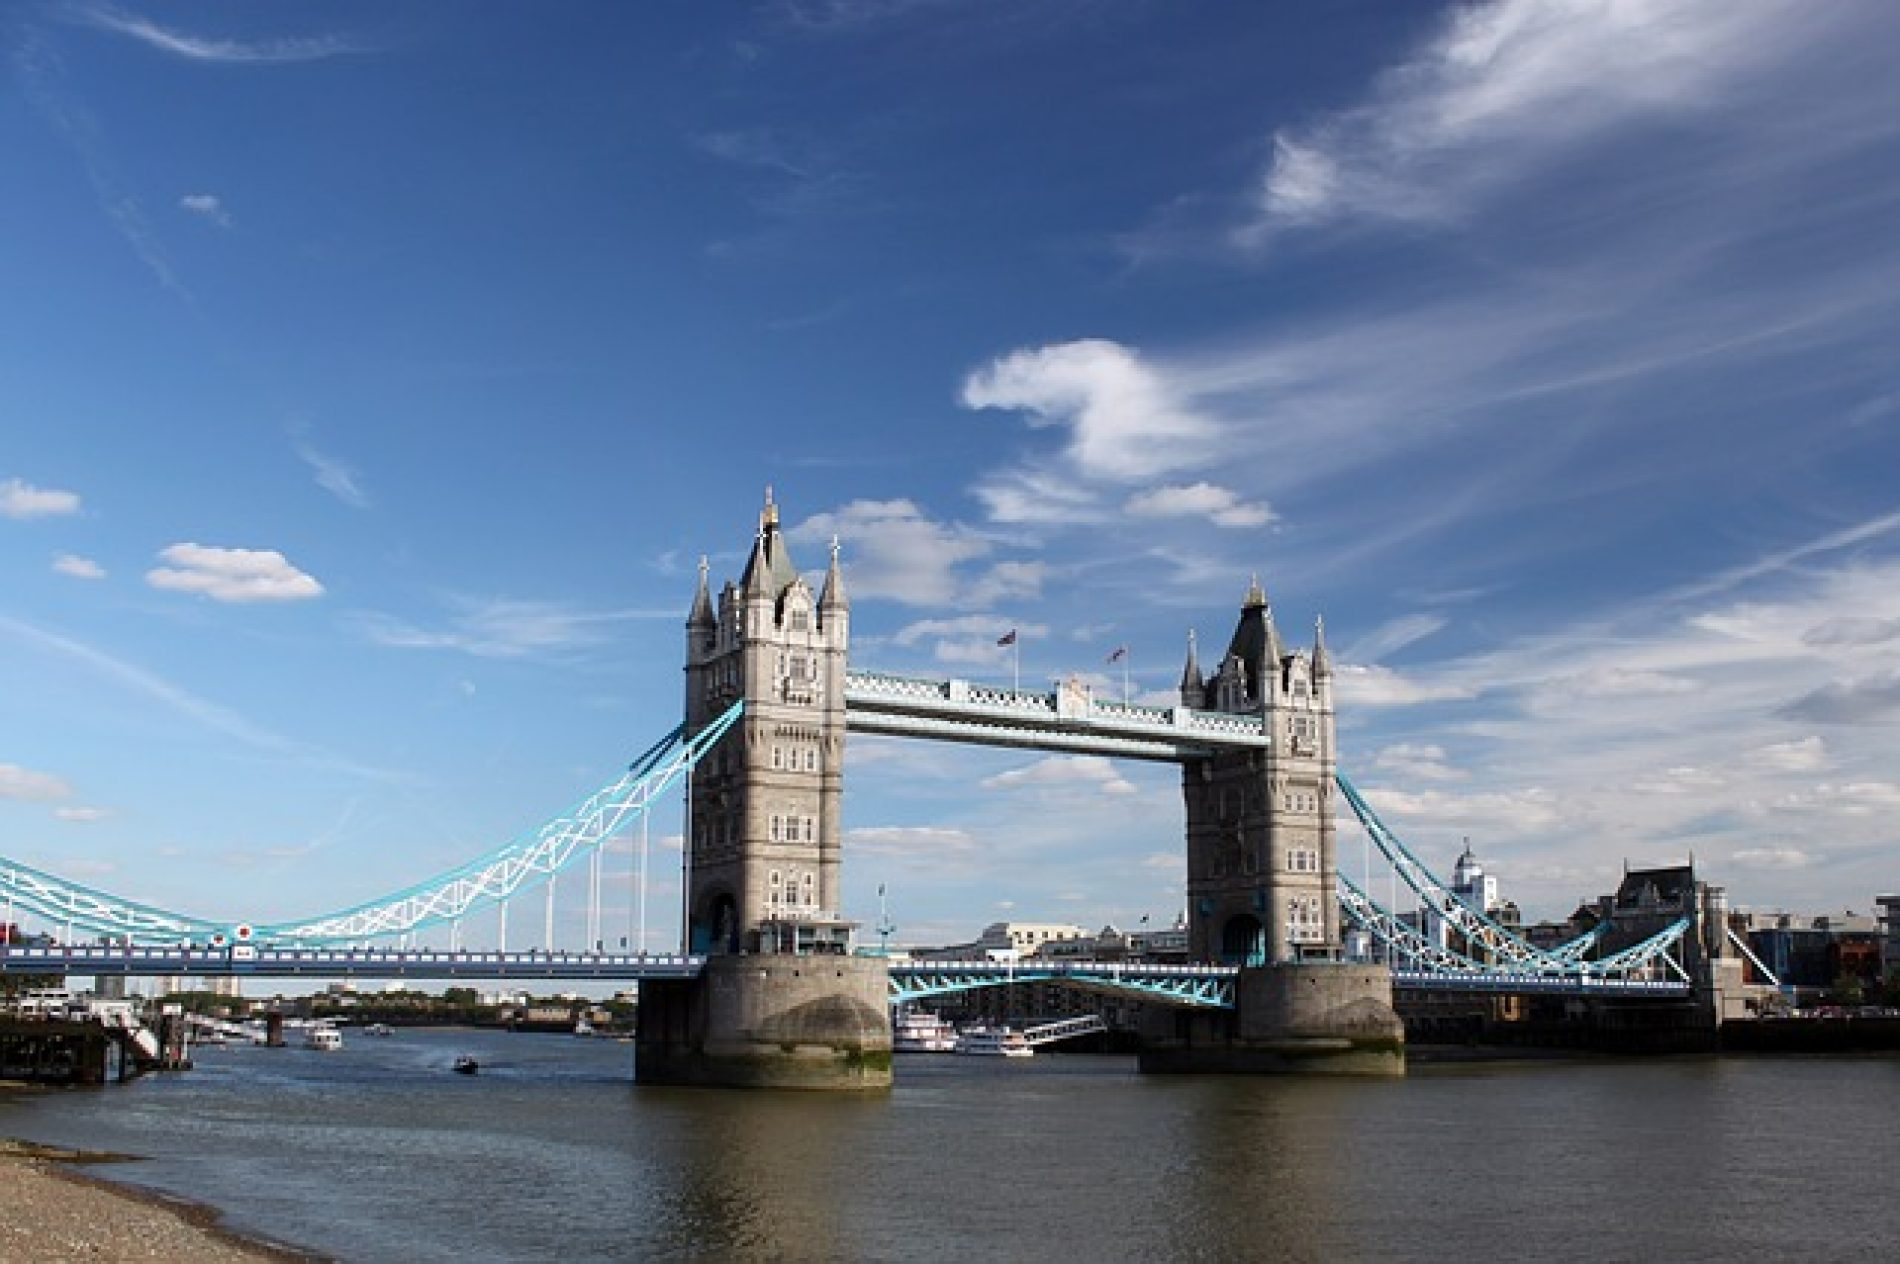 Tower Bridge Community Ticket for residents in Southwark, Tower Hamlets and City Of London for £1